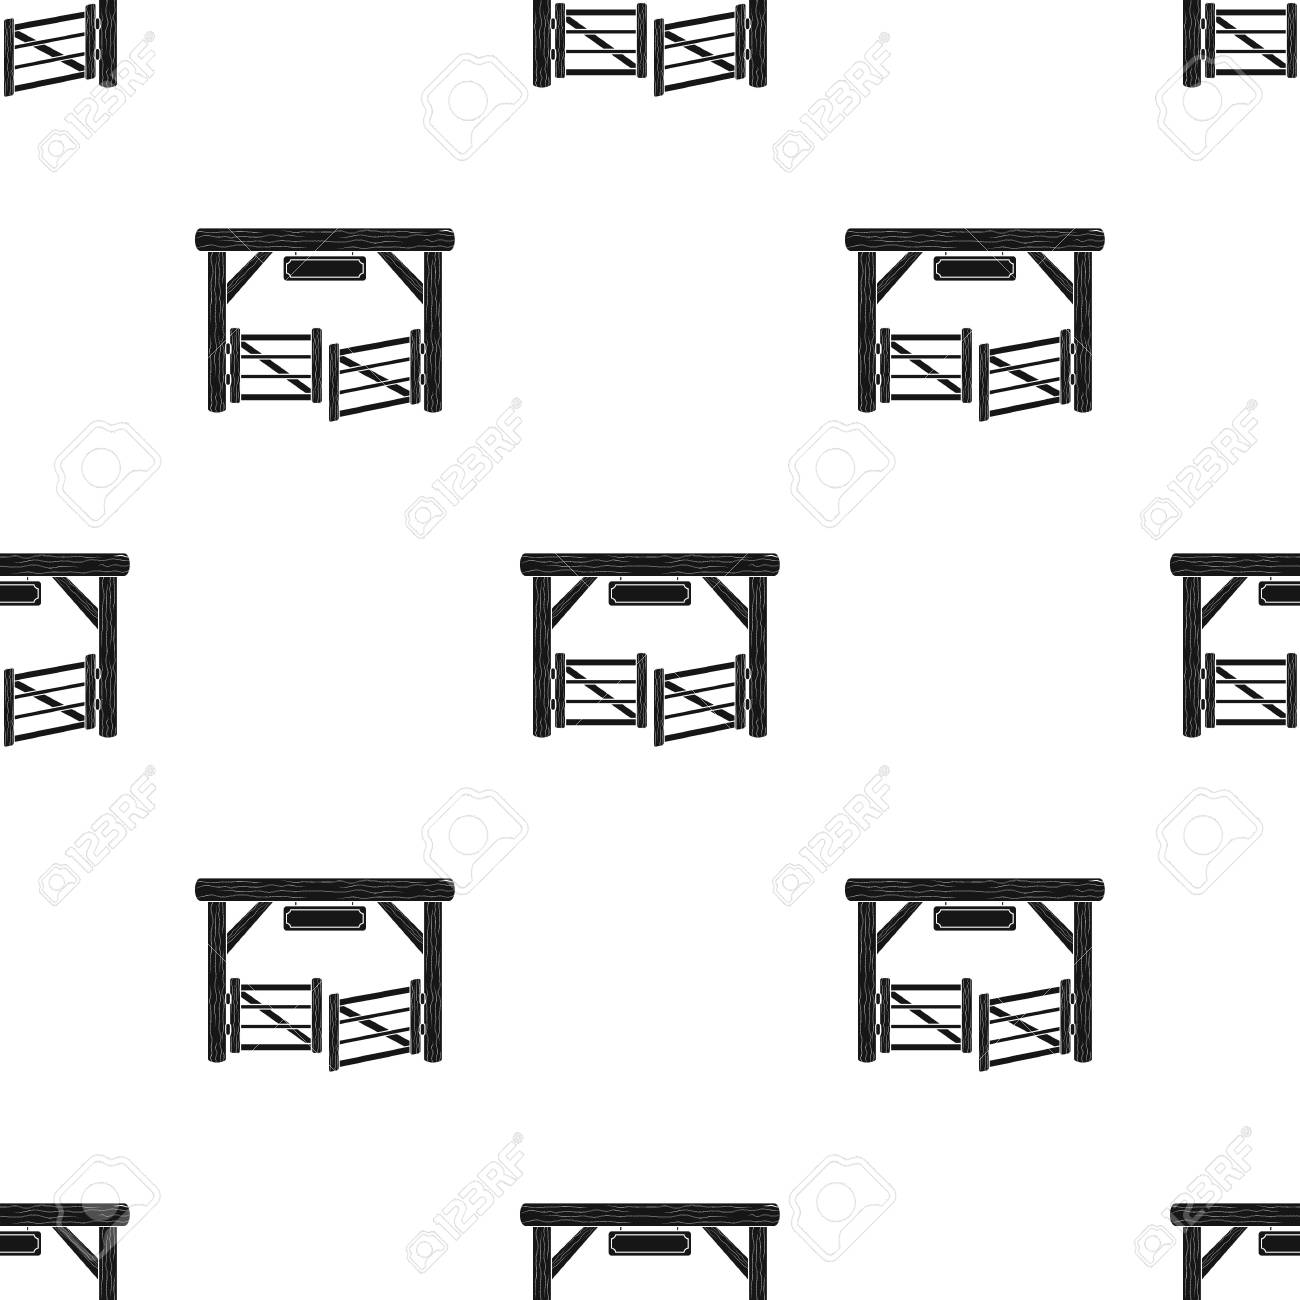 Paddock Gate Icon In Black Design Isolated On White Background And Symbol Rodeo Stock Vector Illustration